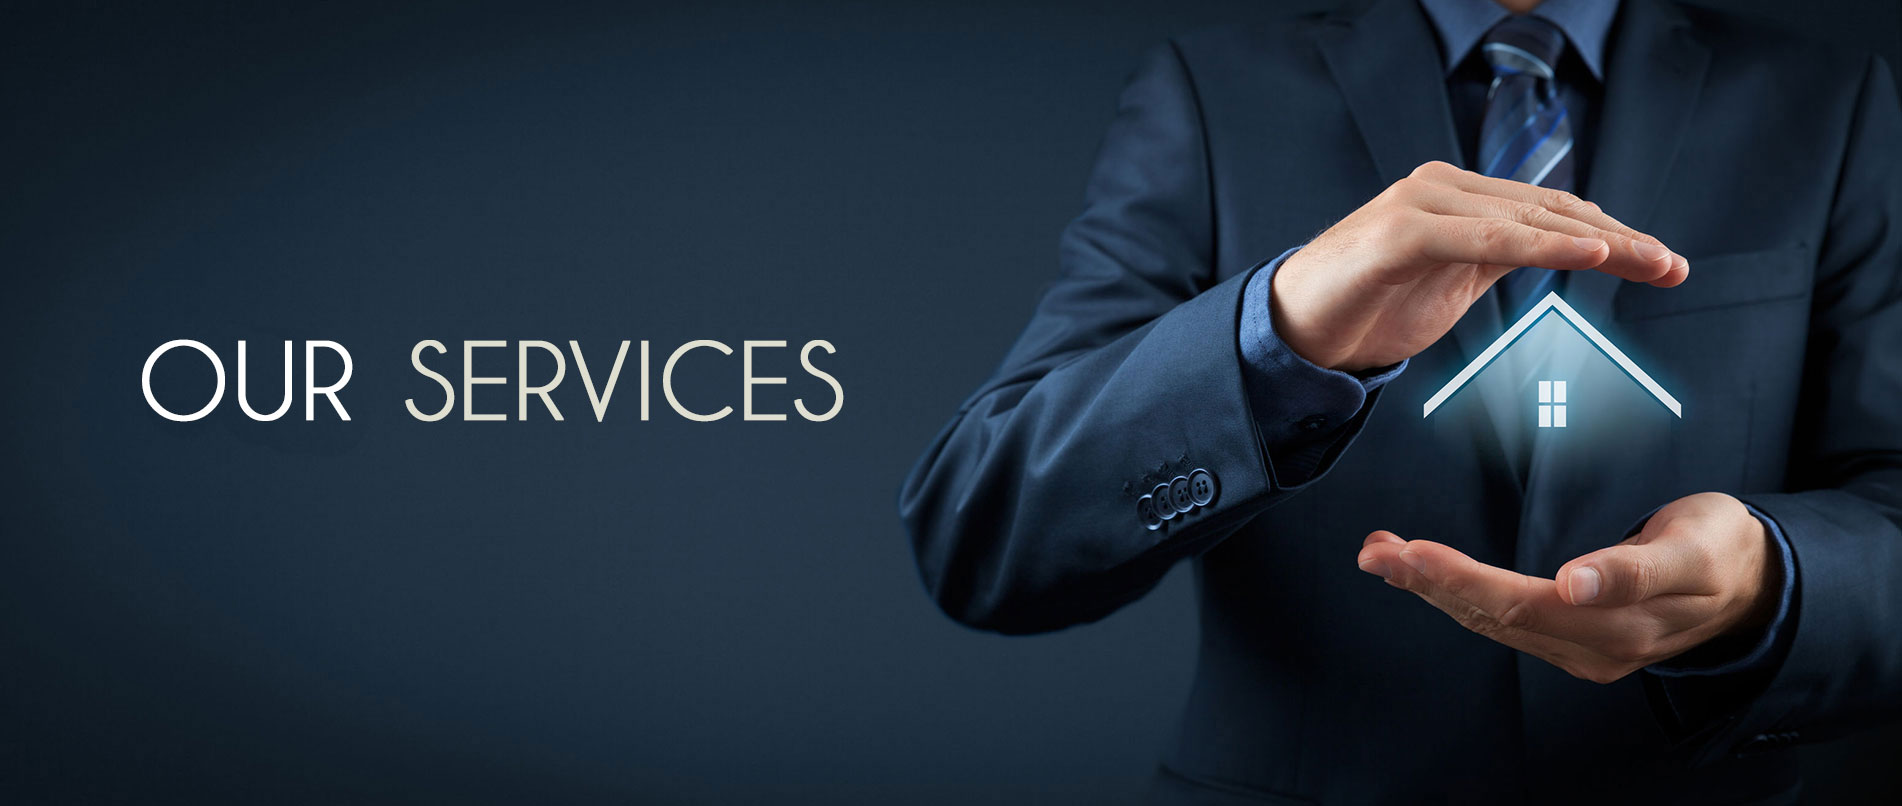 your conciergerie - service delivery and janitorial services reserved for private owners second house, holiday residence